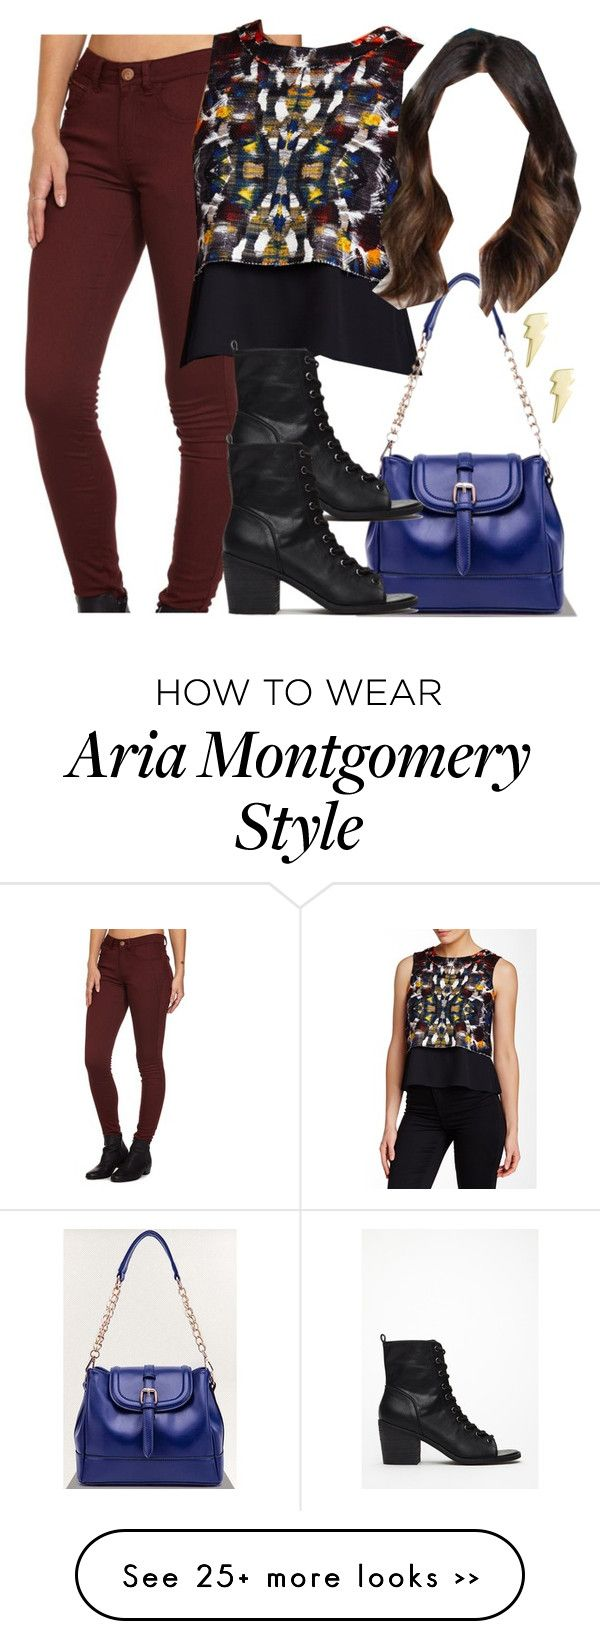 U0026quot;Aria Montgomery inspired outfit with requested topu0026quot; by liarsstyle on Polyvore | Aria Montgomery ...